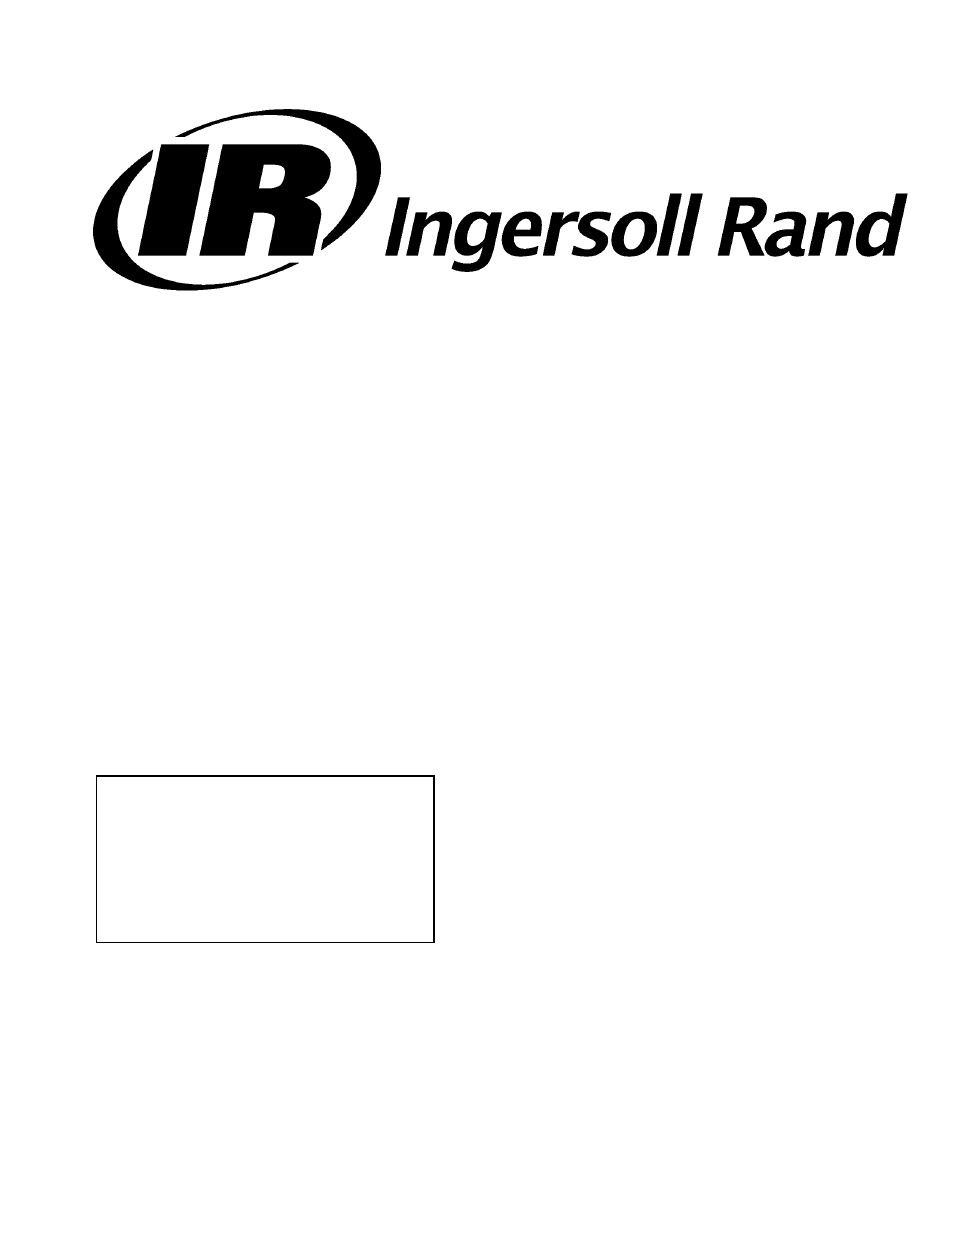 ingersoll rand 100 200 hp 75 160 kw user manual 93 pages also rh manualsdir com Rand Ingersoll R75i-W1235 ingersoll rand user manual for impact wrench